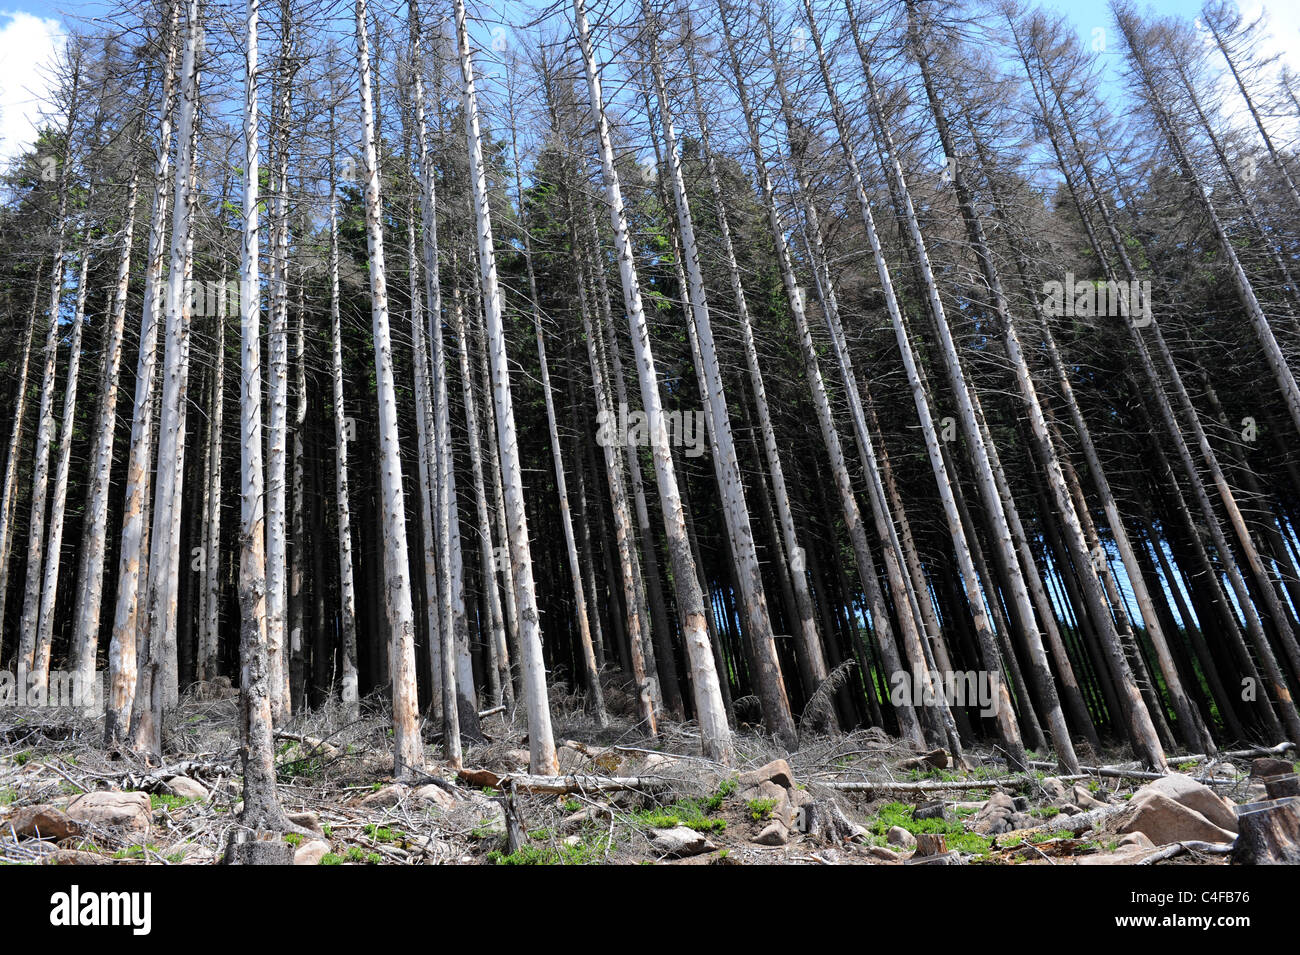 Spruce trees killed by bark beetle in Harz National Park Germany - Stock Image